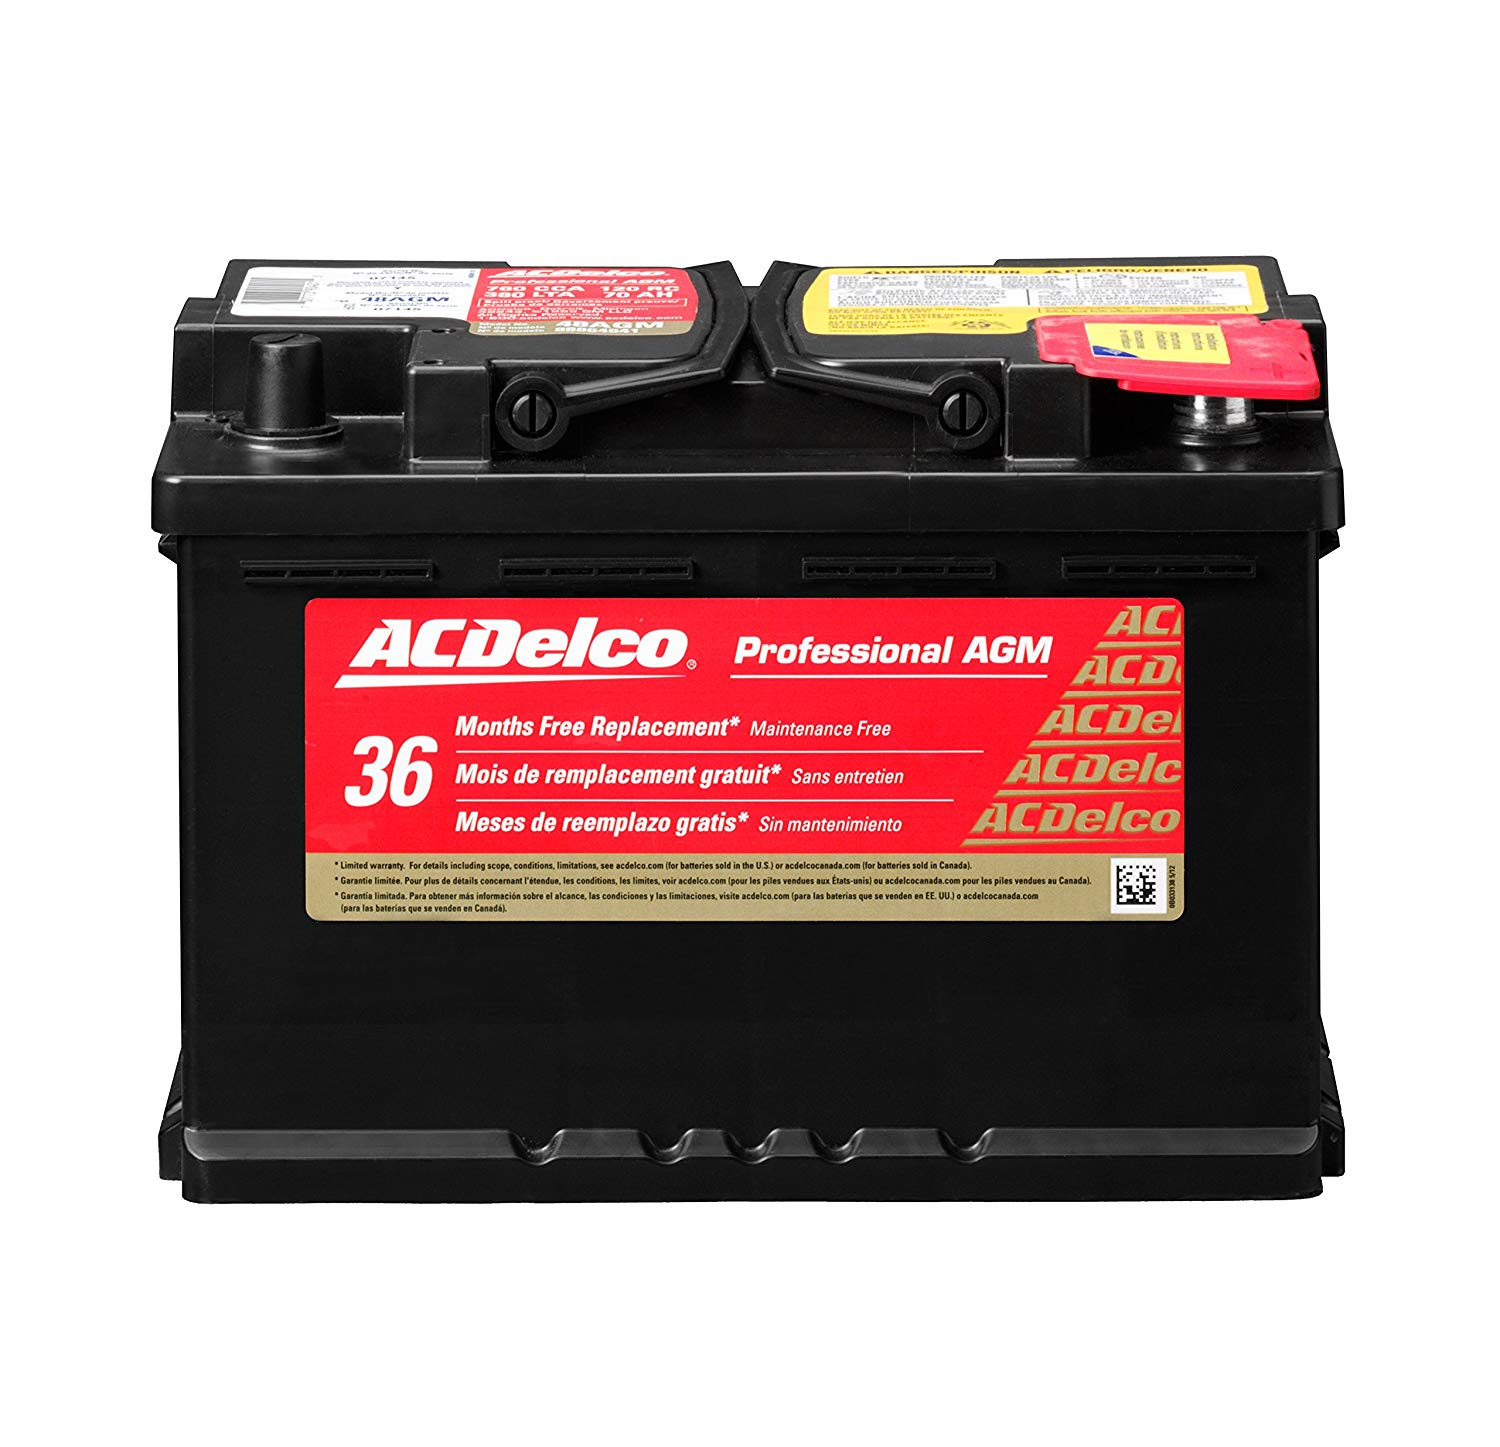 ACDelco truck battery